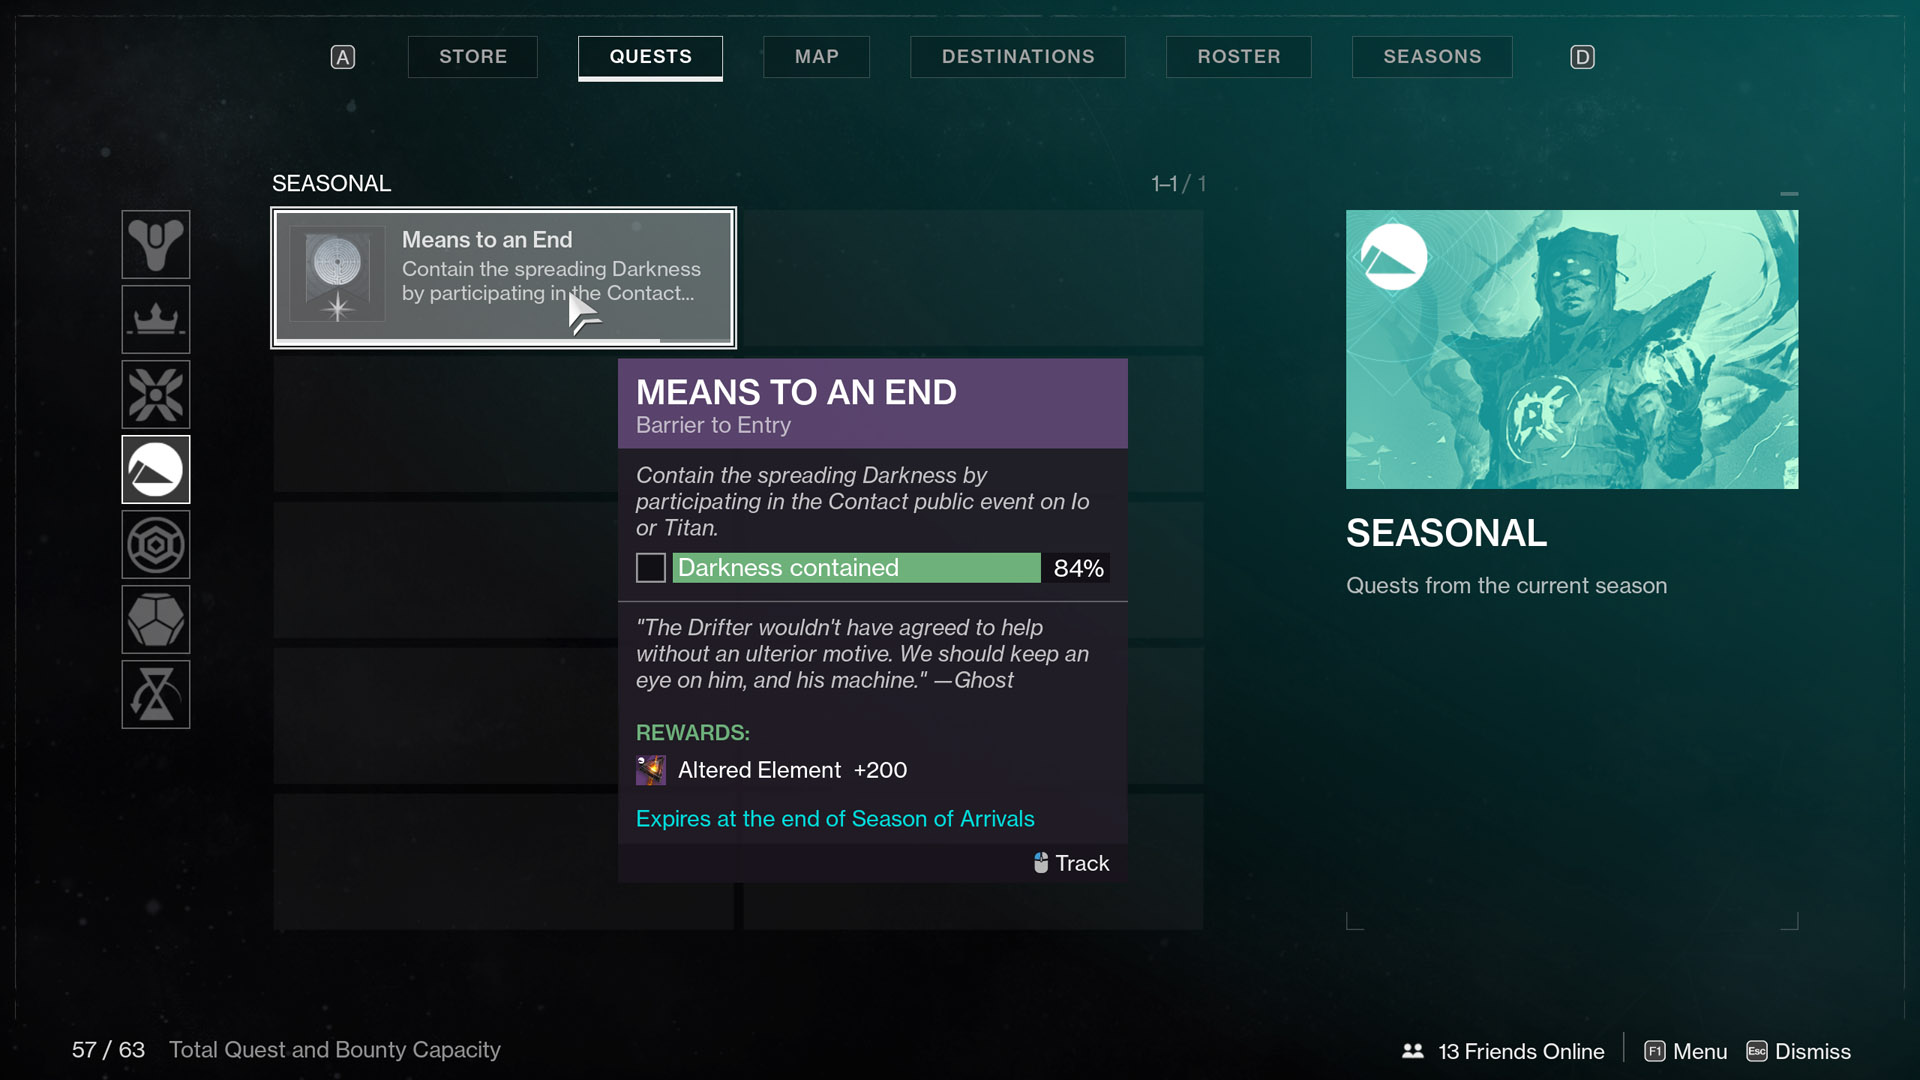 destiny 2 season of arrivals Means to an End Barrier to Entry